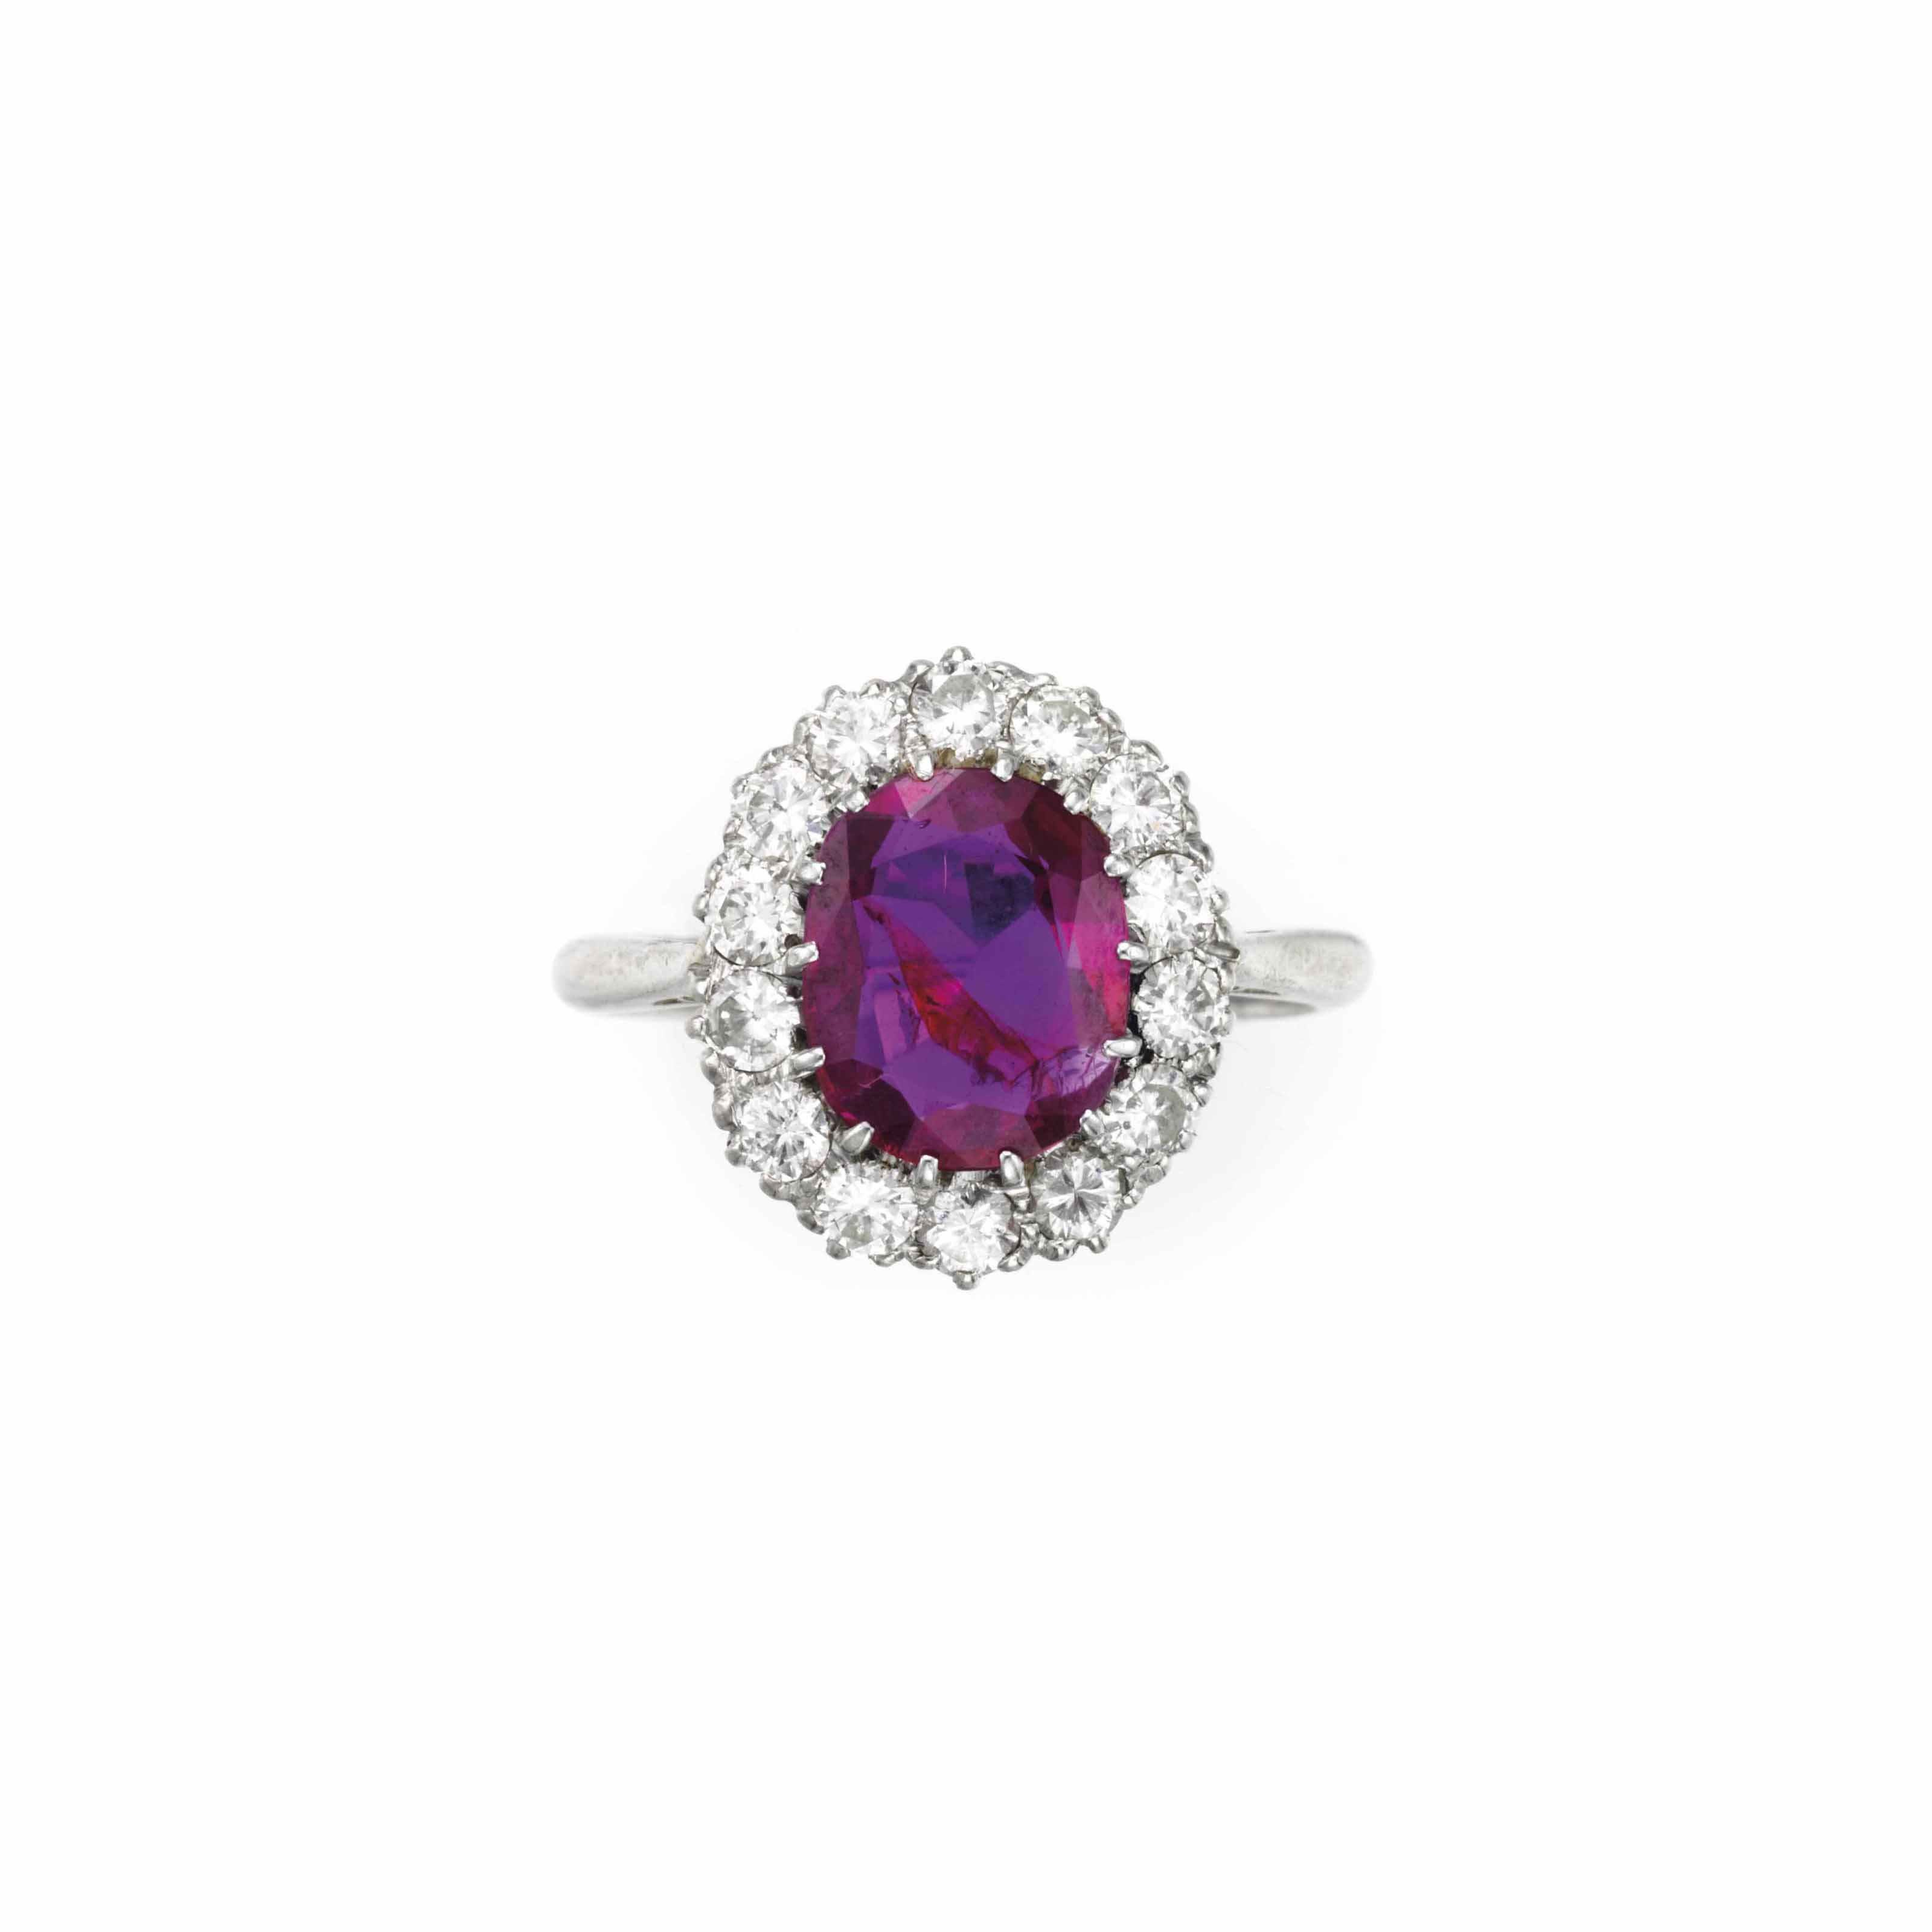 A PLATINUM, OVAL-CUT RUBY, AND